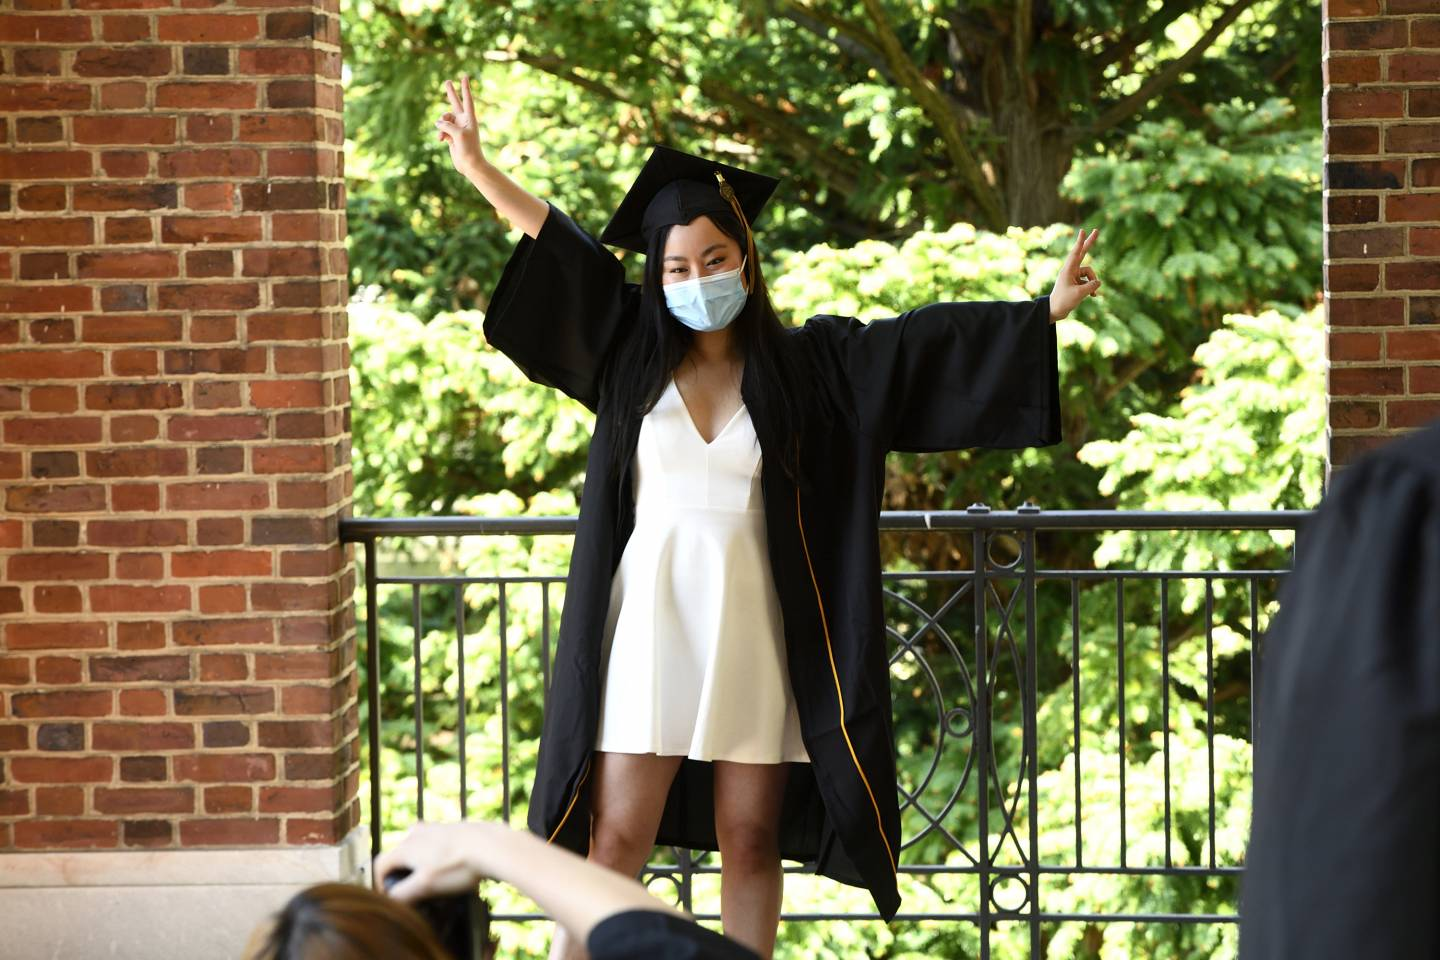 A student in cap and gown and a mask poses for a photo